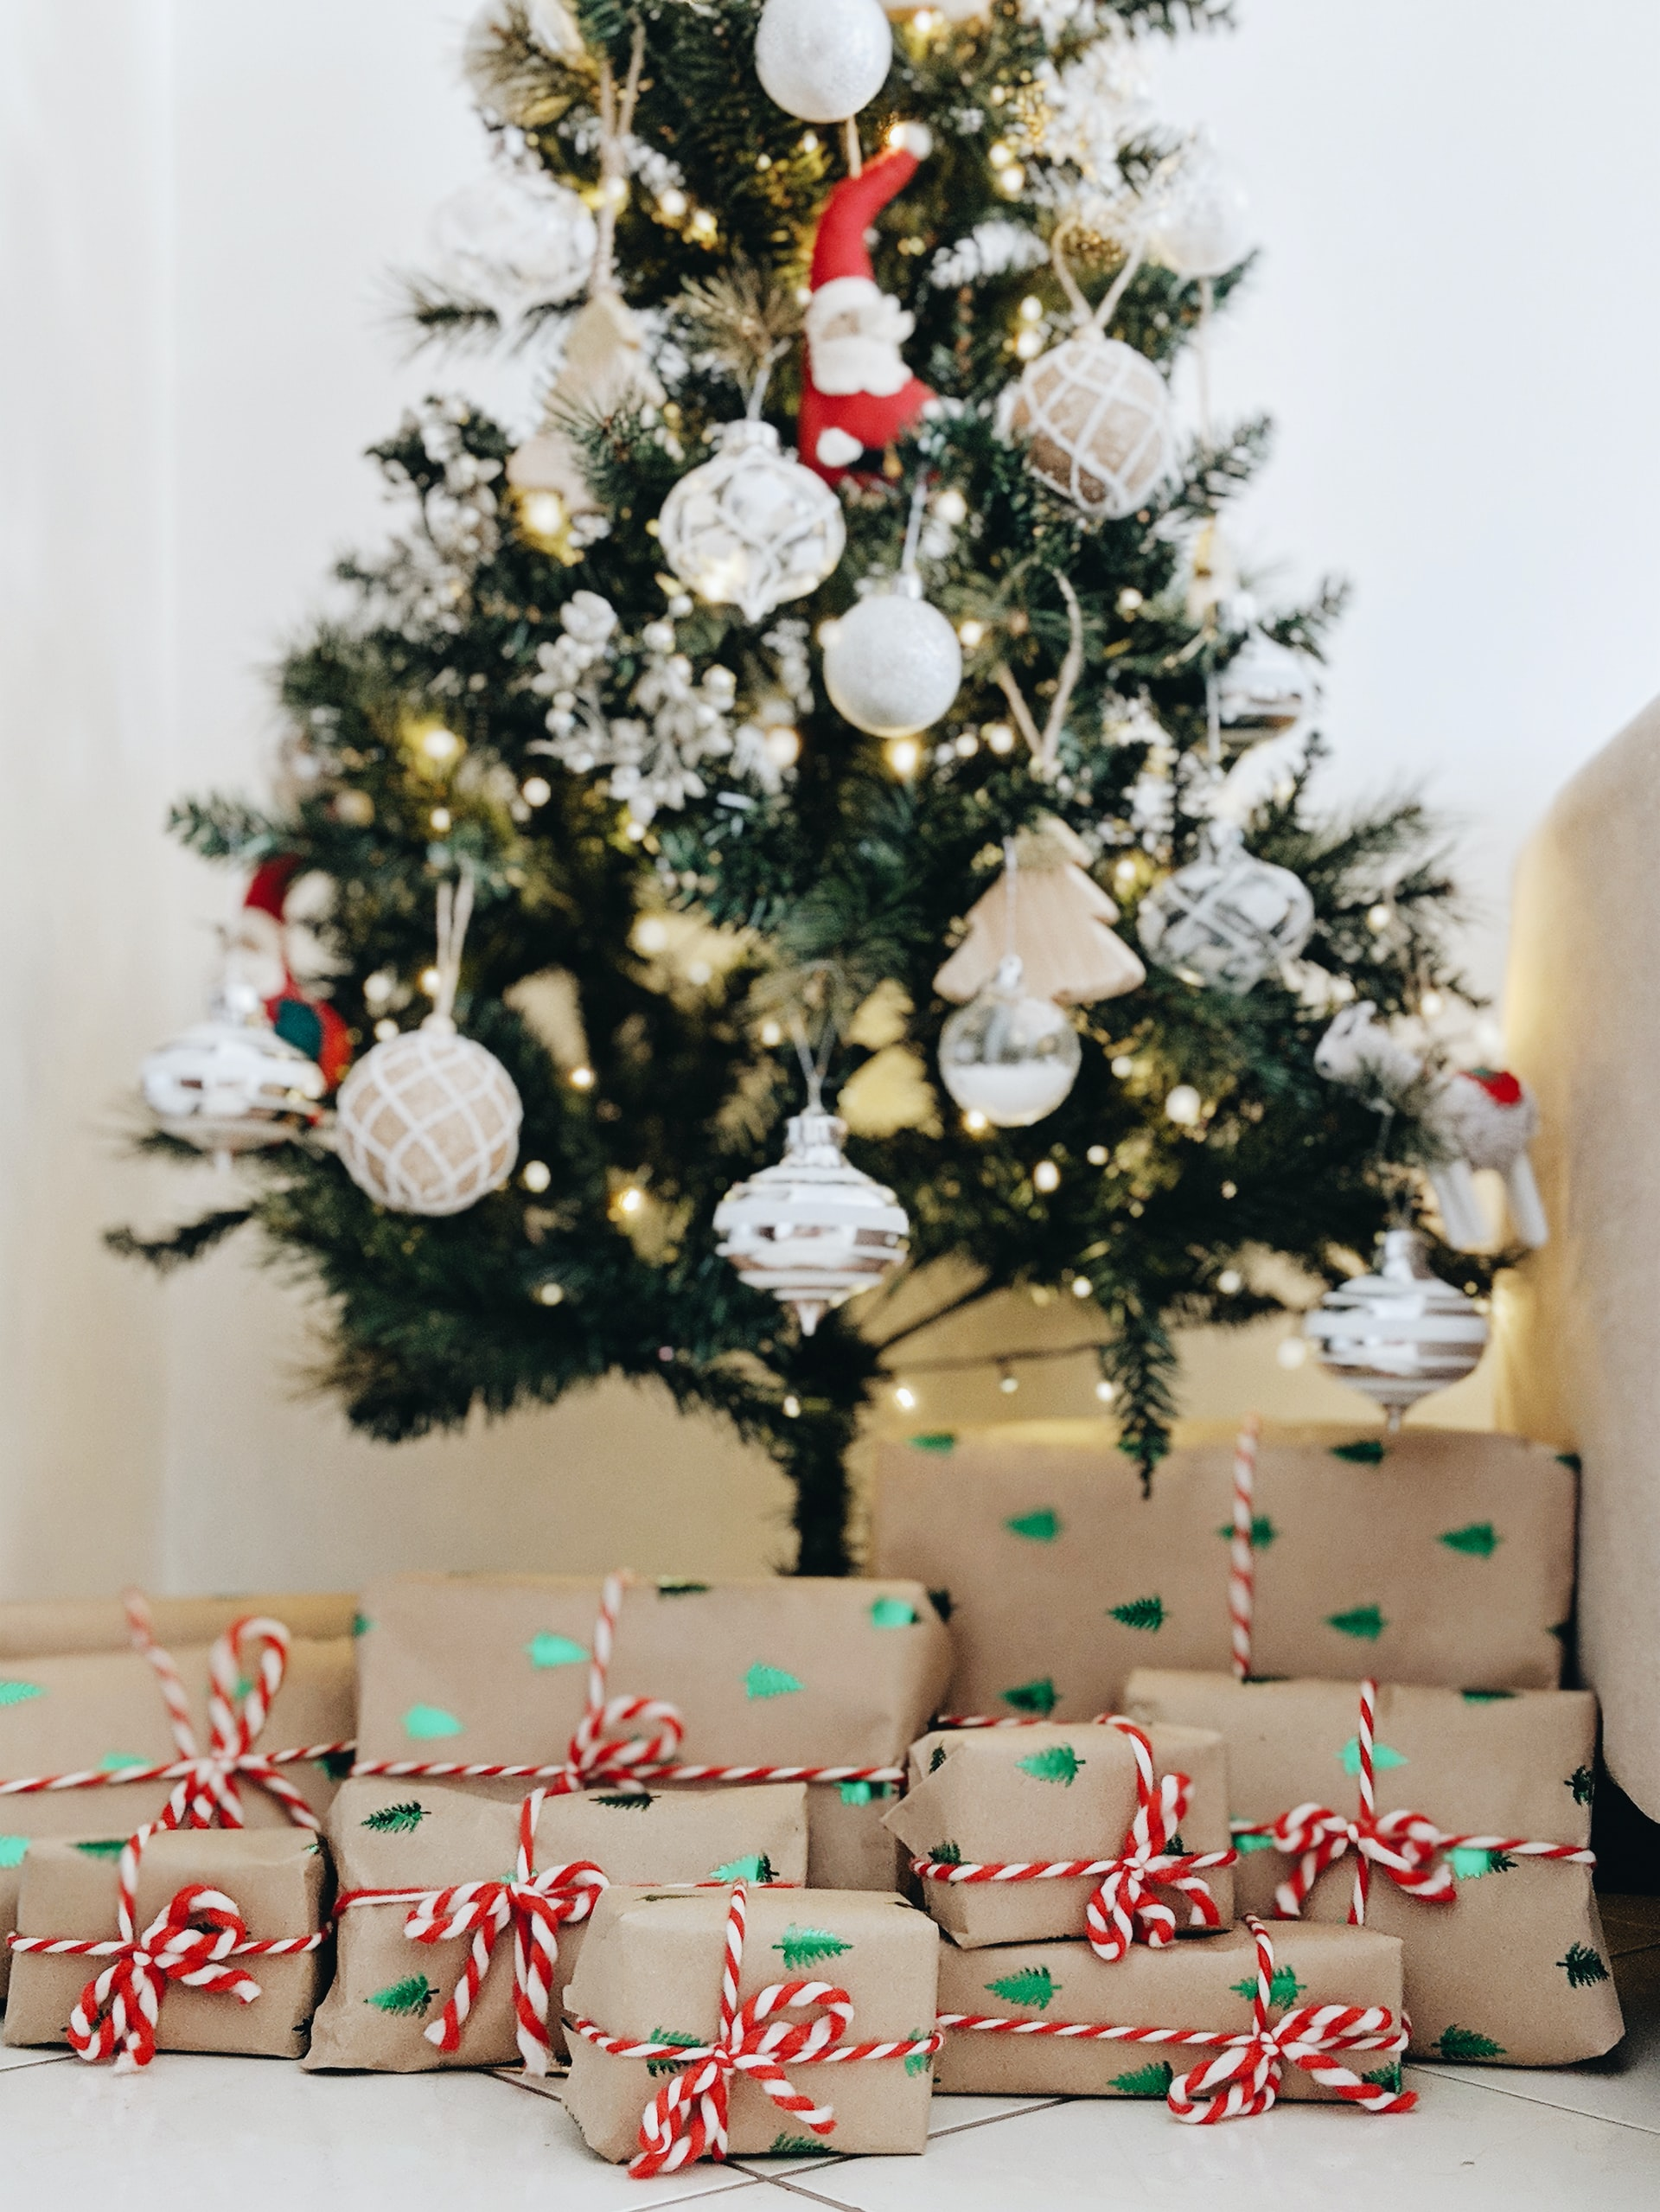 A Christmas tree and boxes of wrapped Christmas presents